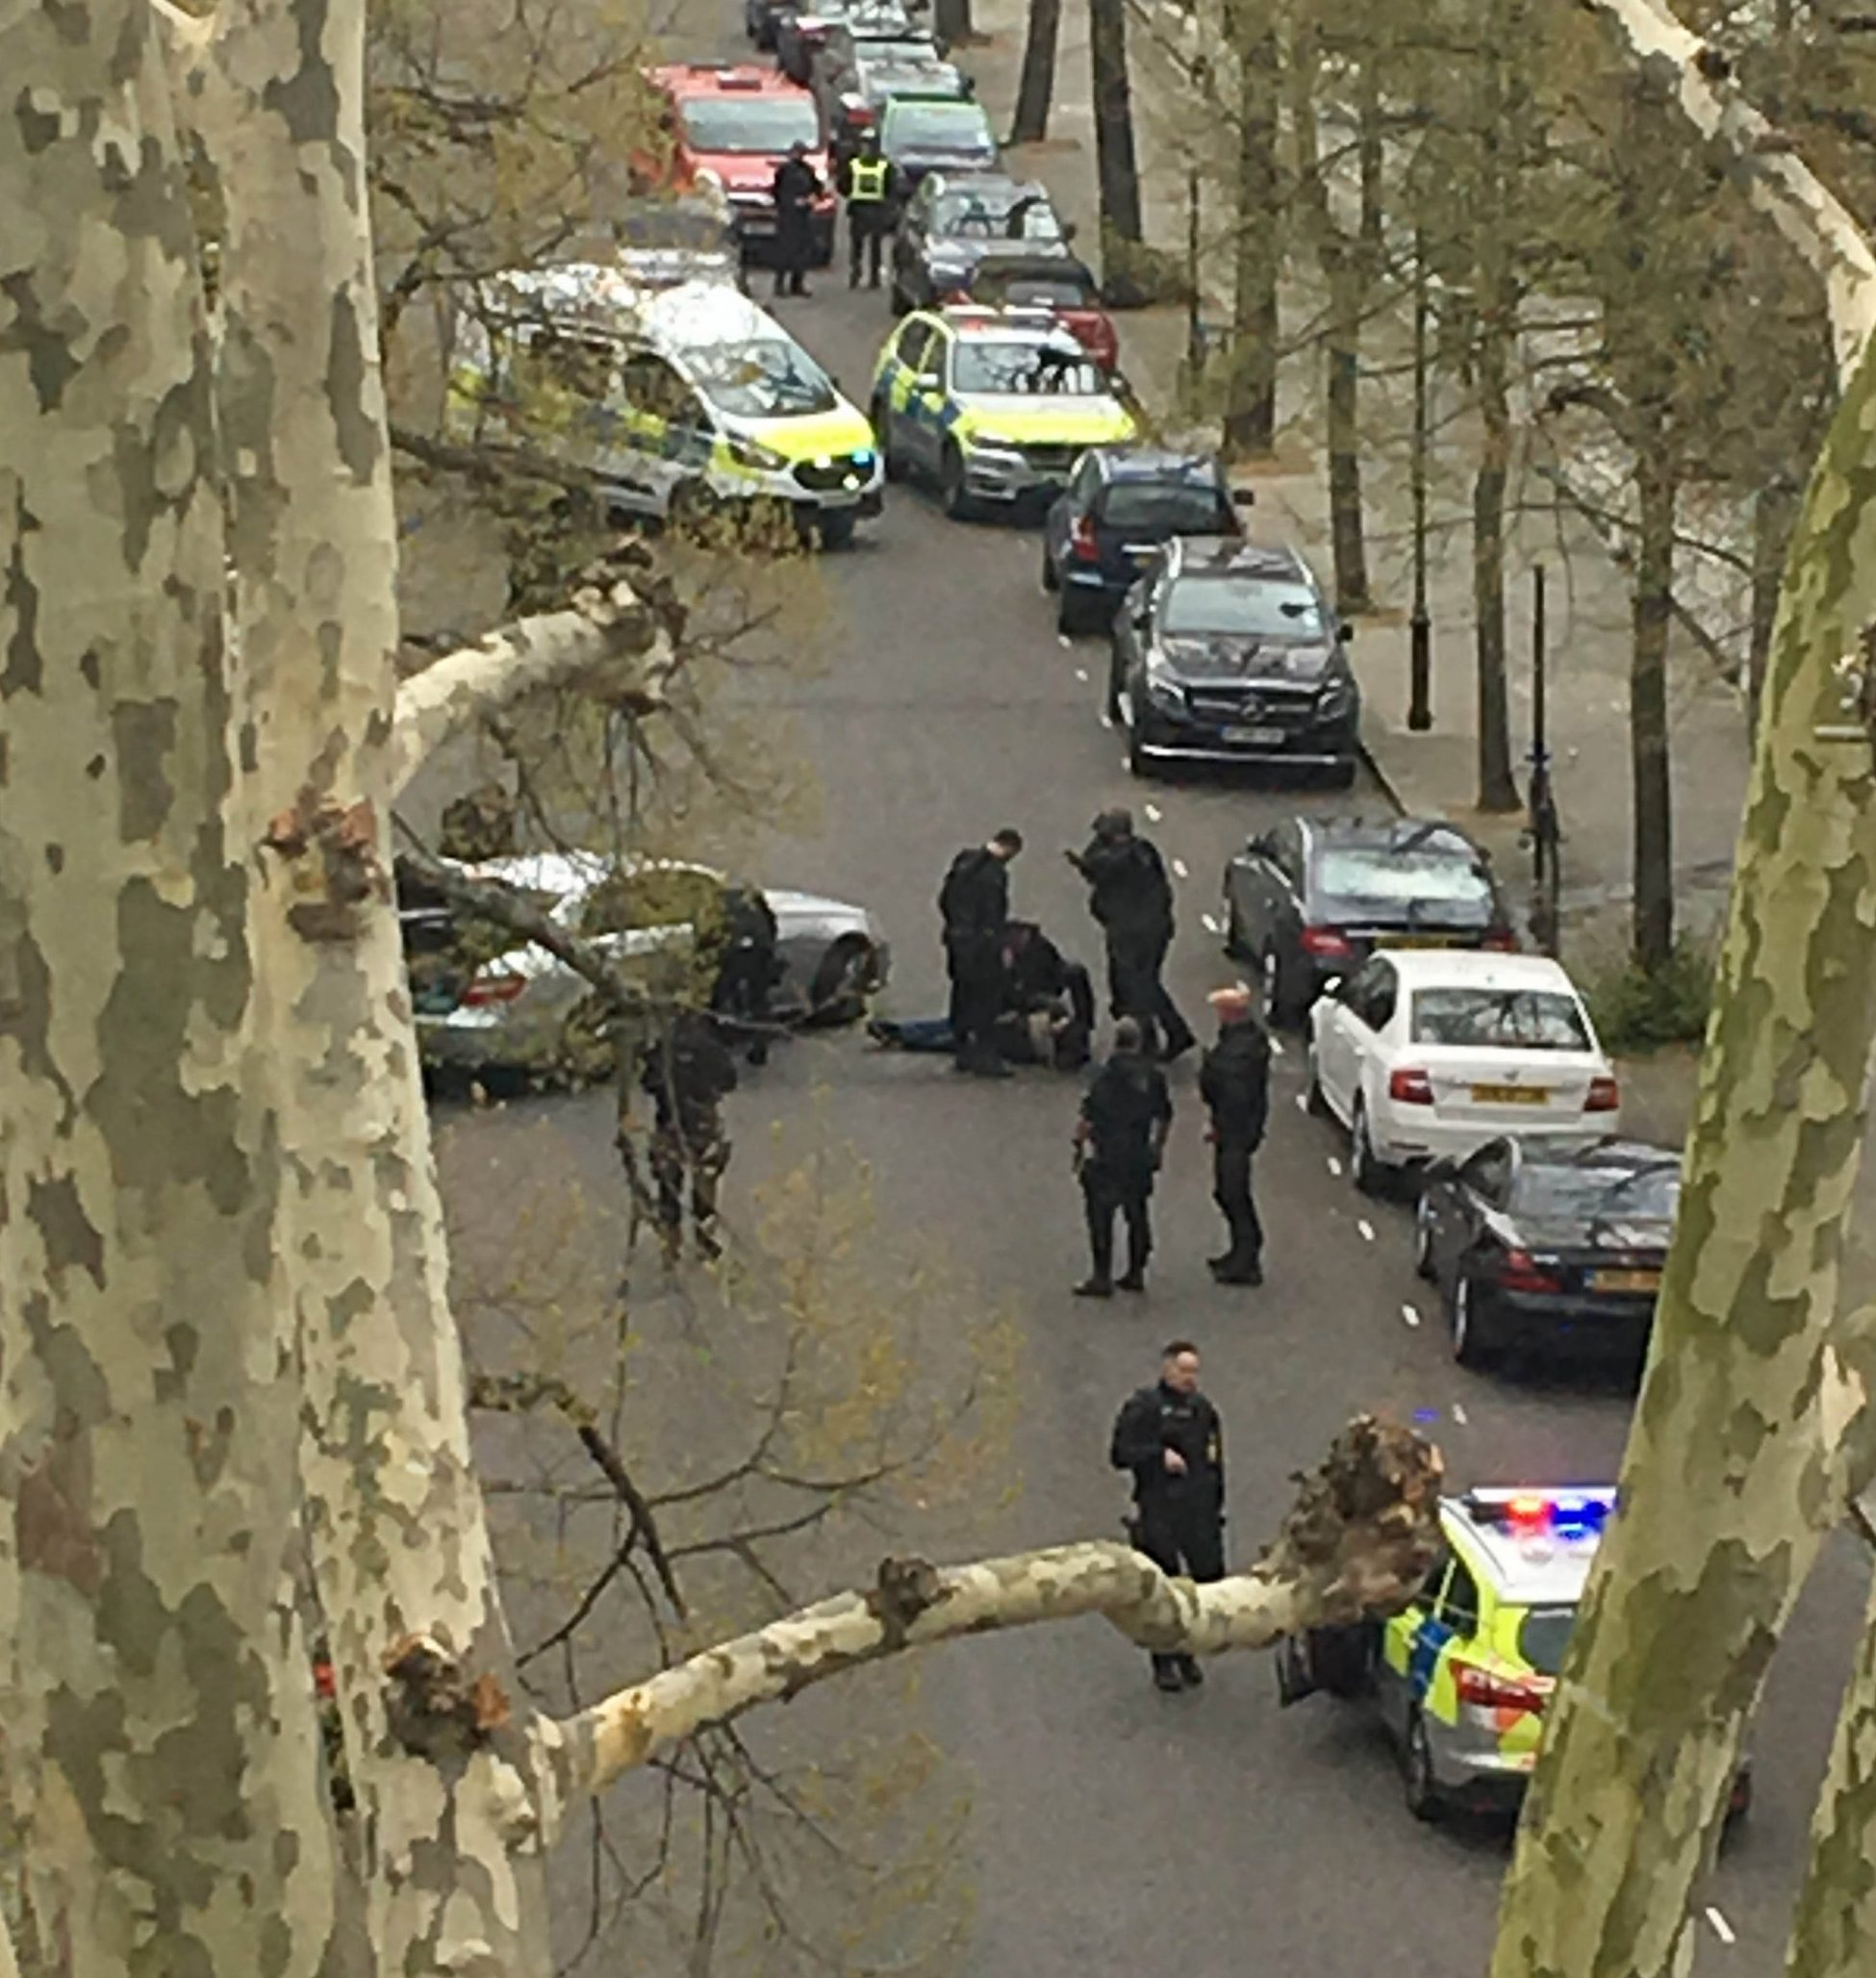 """Police apprehend a suspect near the Ukrainian Embassy in Holland Park, west London after police fired shots when the ambassador's car was """"deliberately rammed"""". PRESS ASSOCIATION Photo. Picture date: Saturday April 13, 2019. The embassy said the official car of the Ambassador of Ukraine to the UK, Natalia Galibarenko, was attacked on Saturday morning at around 10am. No one was injured in the incident and one person was taken to a police station. See PA story POLICE HollandPark. Photo credit should read: Emma Slatter/PA Wire NOTE TO EDITORS: This handout photo may only be used in for editorial reporting purposes for the contemporaneous illustration of events, things or the people in the image or facts mentioned in the caption. Reuse of the picture may require further permission from the copyright holder."""